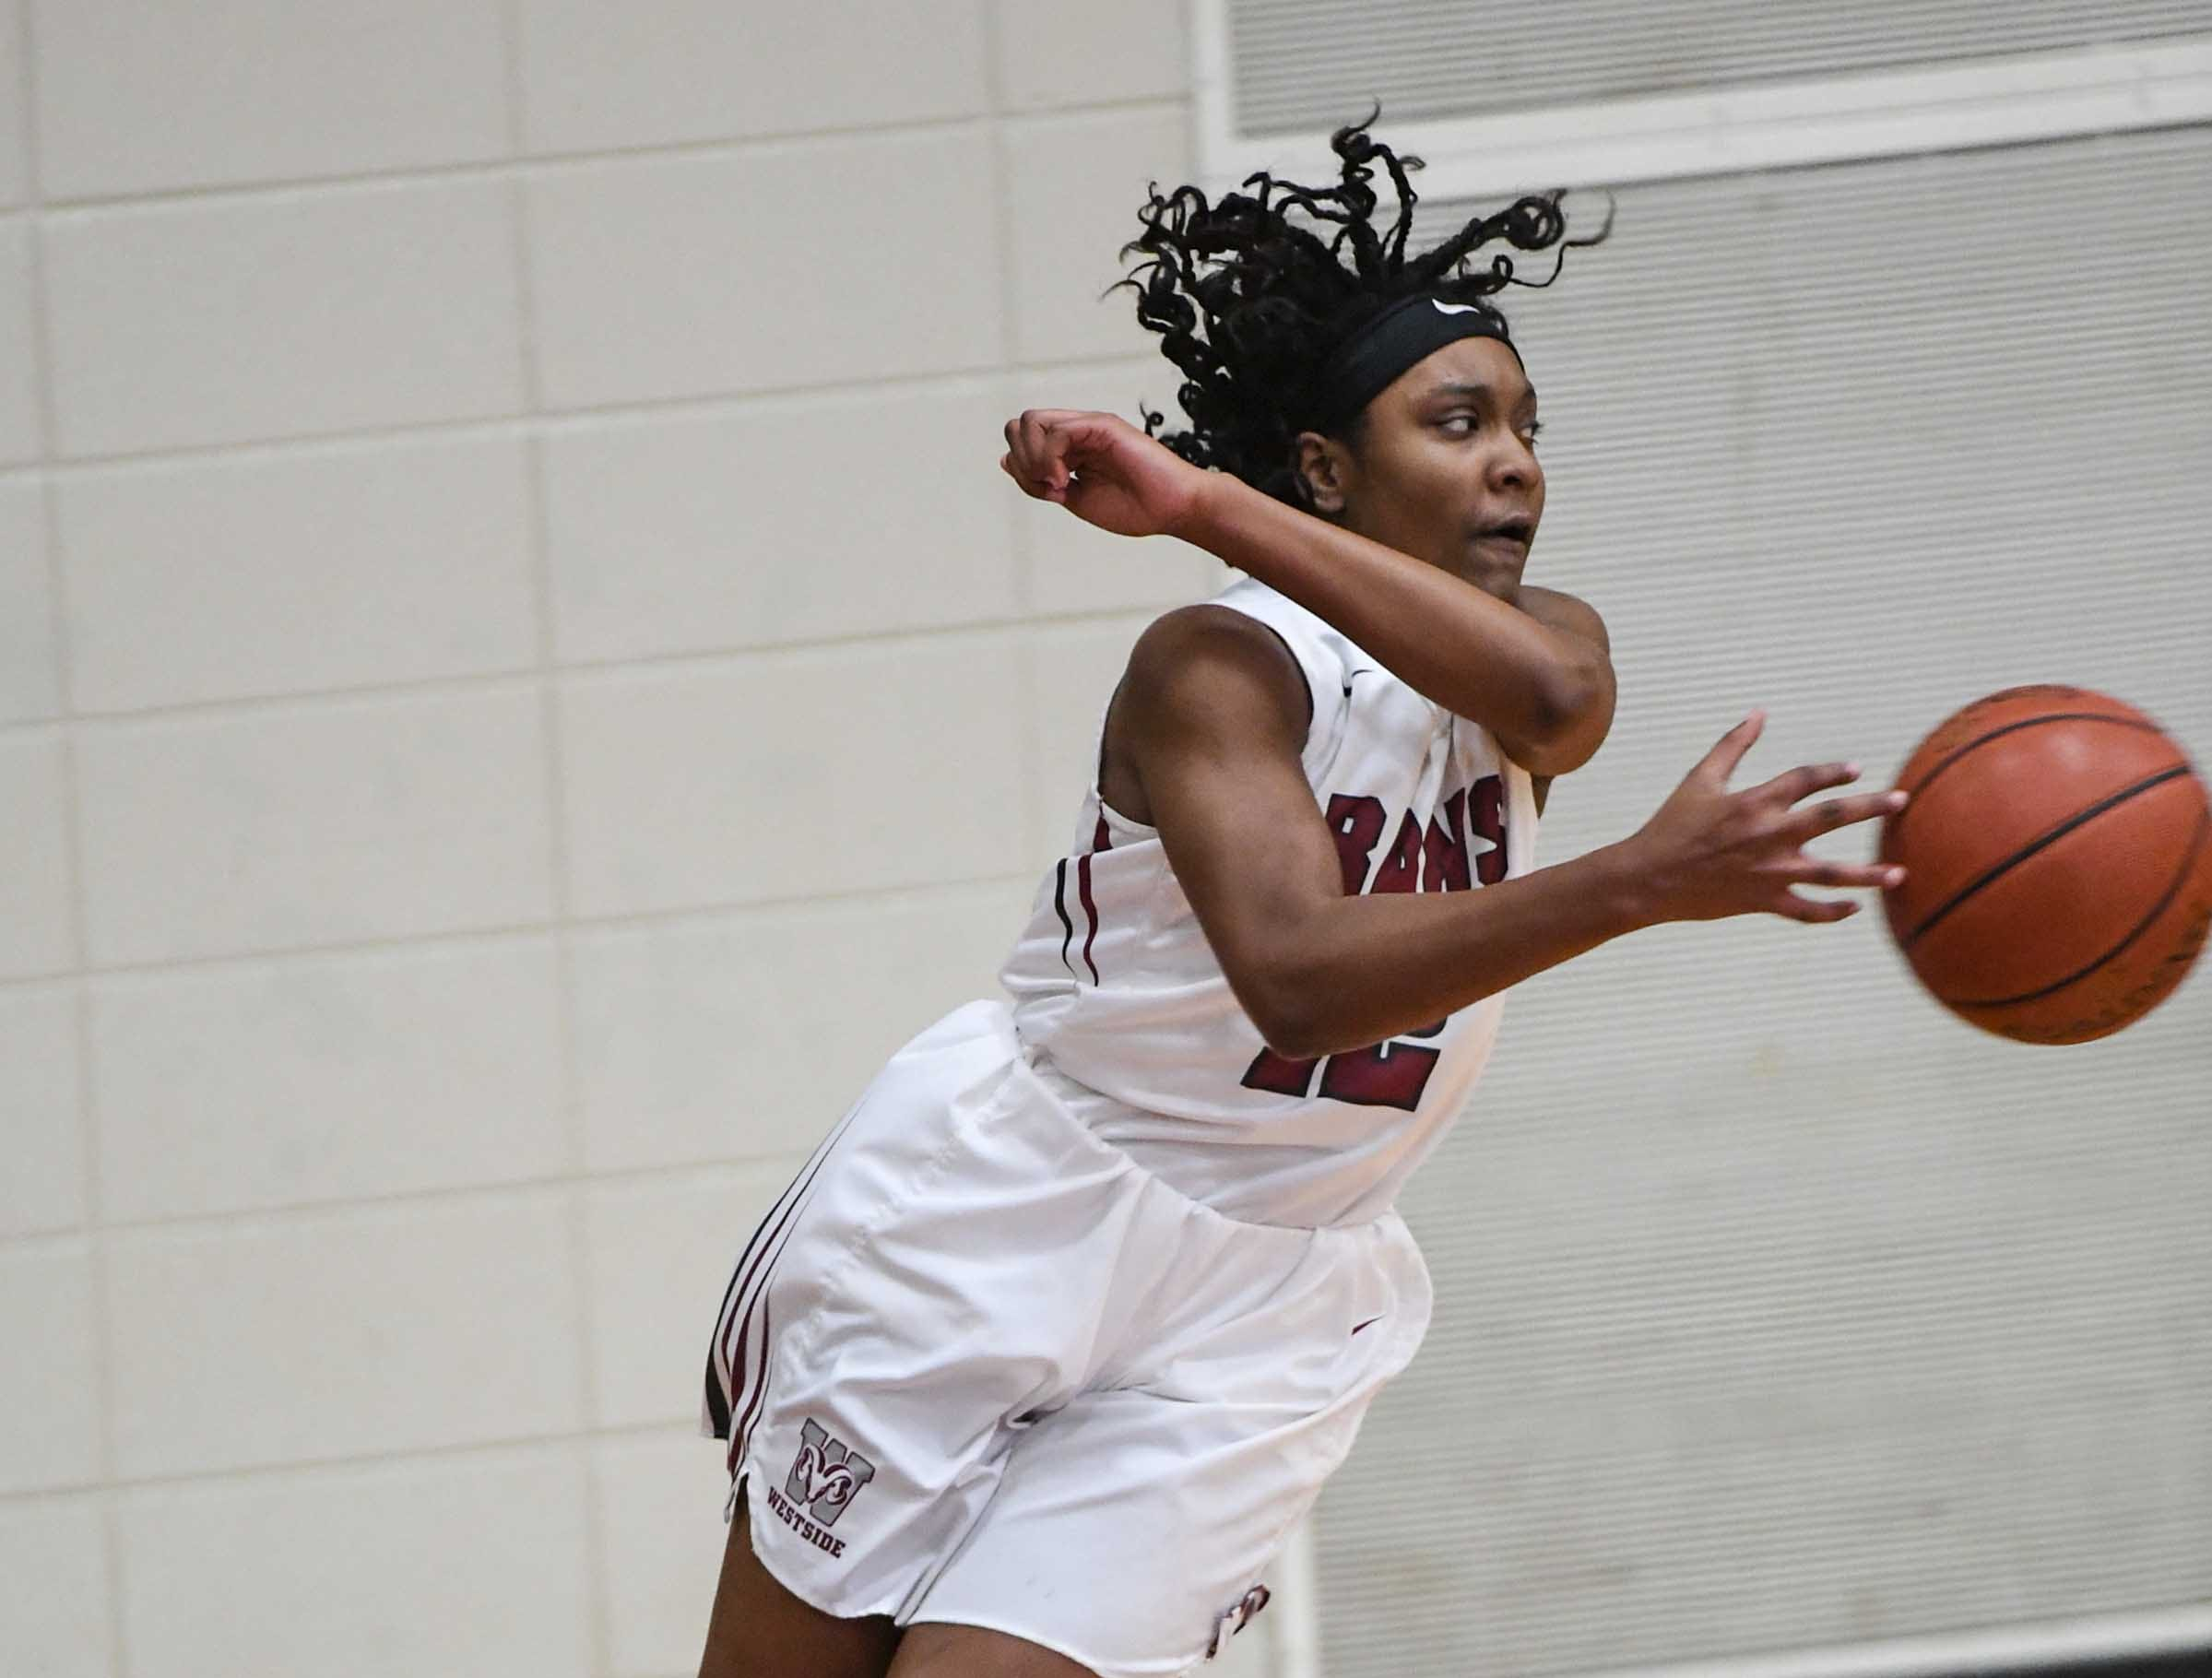 Westside freshman Branya Pruitt(12) saves a ball from going out of bounds against Easley during the second quarter at Westside High School in Anderson on Friday.